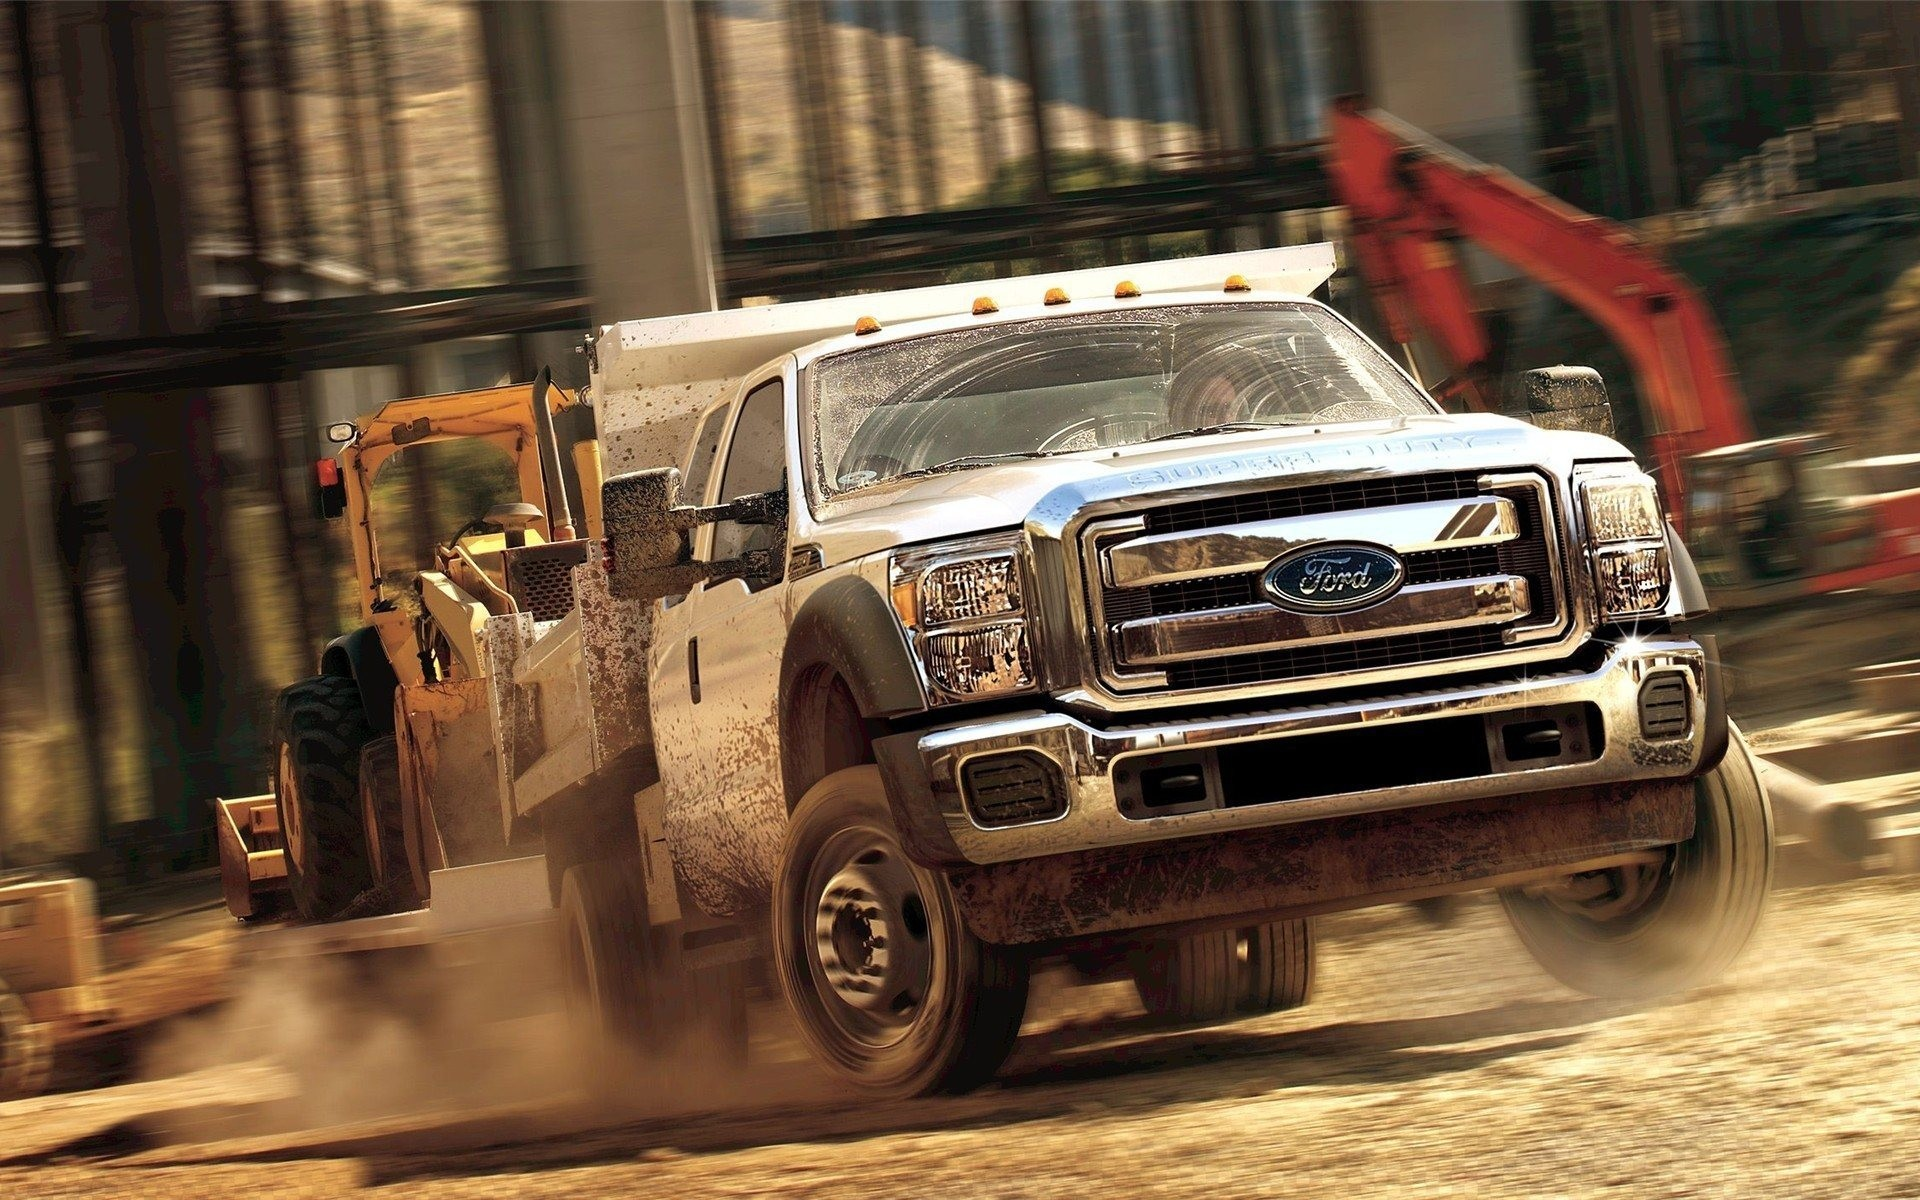 2017 Ford F150 Lifted >> Lifted Truck Wallpaper HD (49+ images)